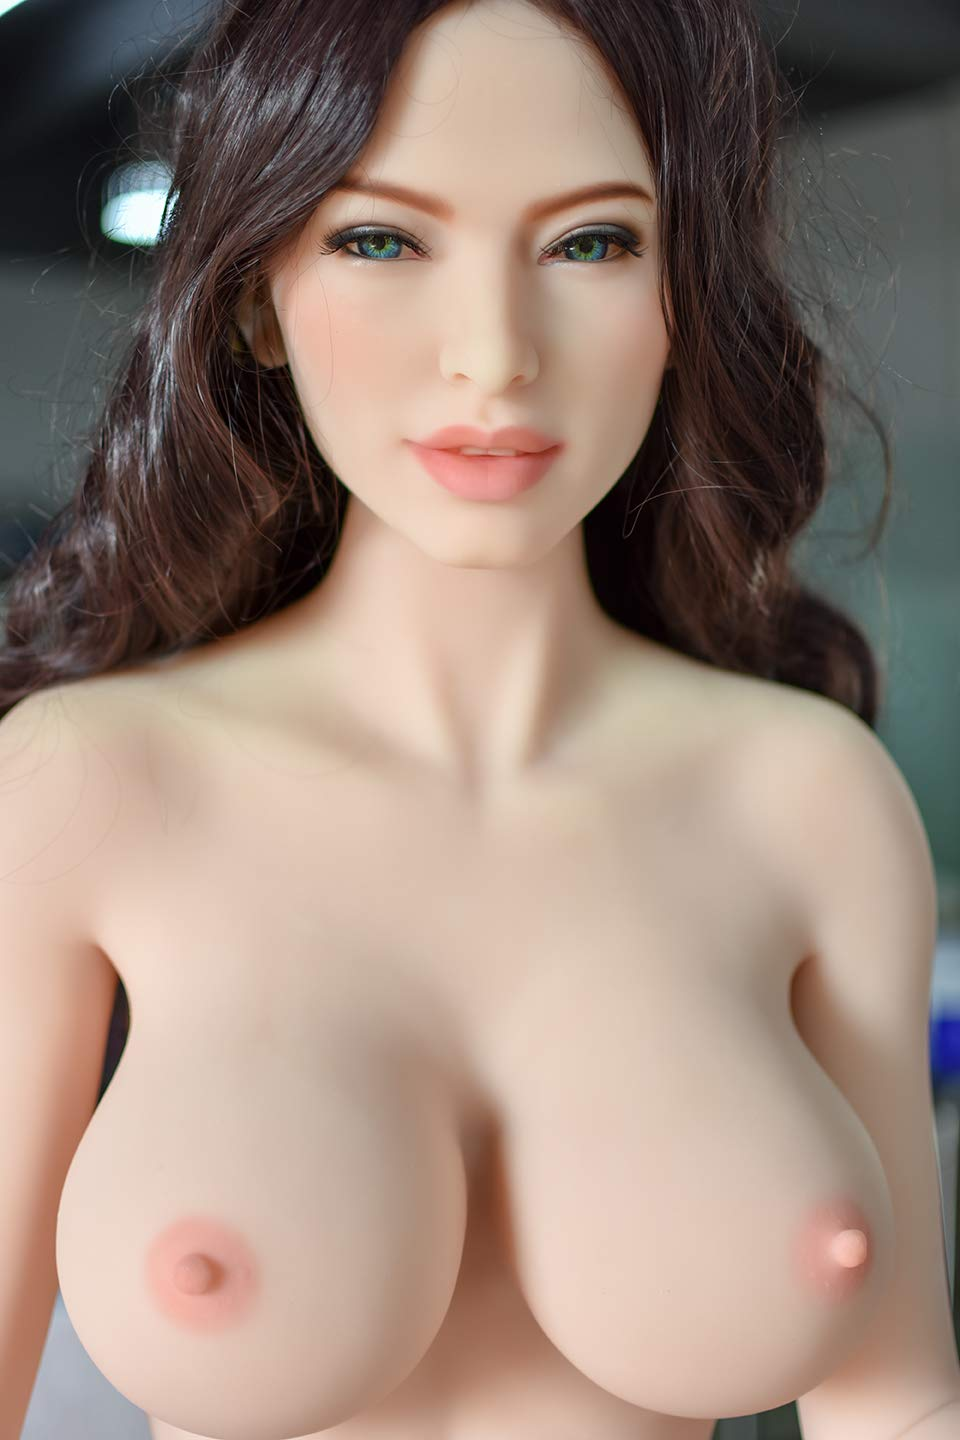 Blowjob Oral Sex Doll Head with m16 Connector Real Doll Heads Adult Sex Toy-Natural Skin,Wig Include